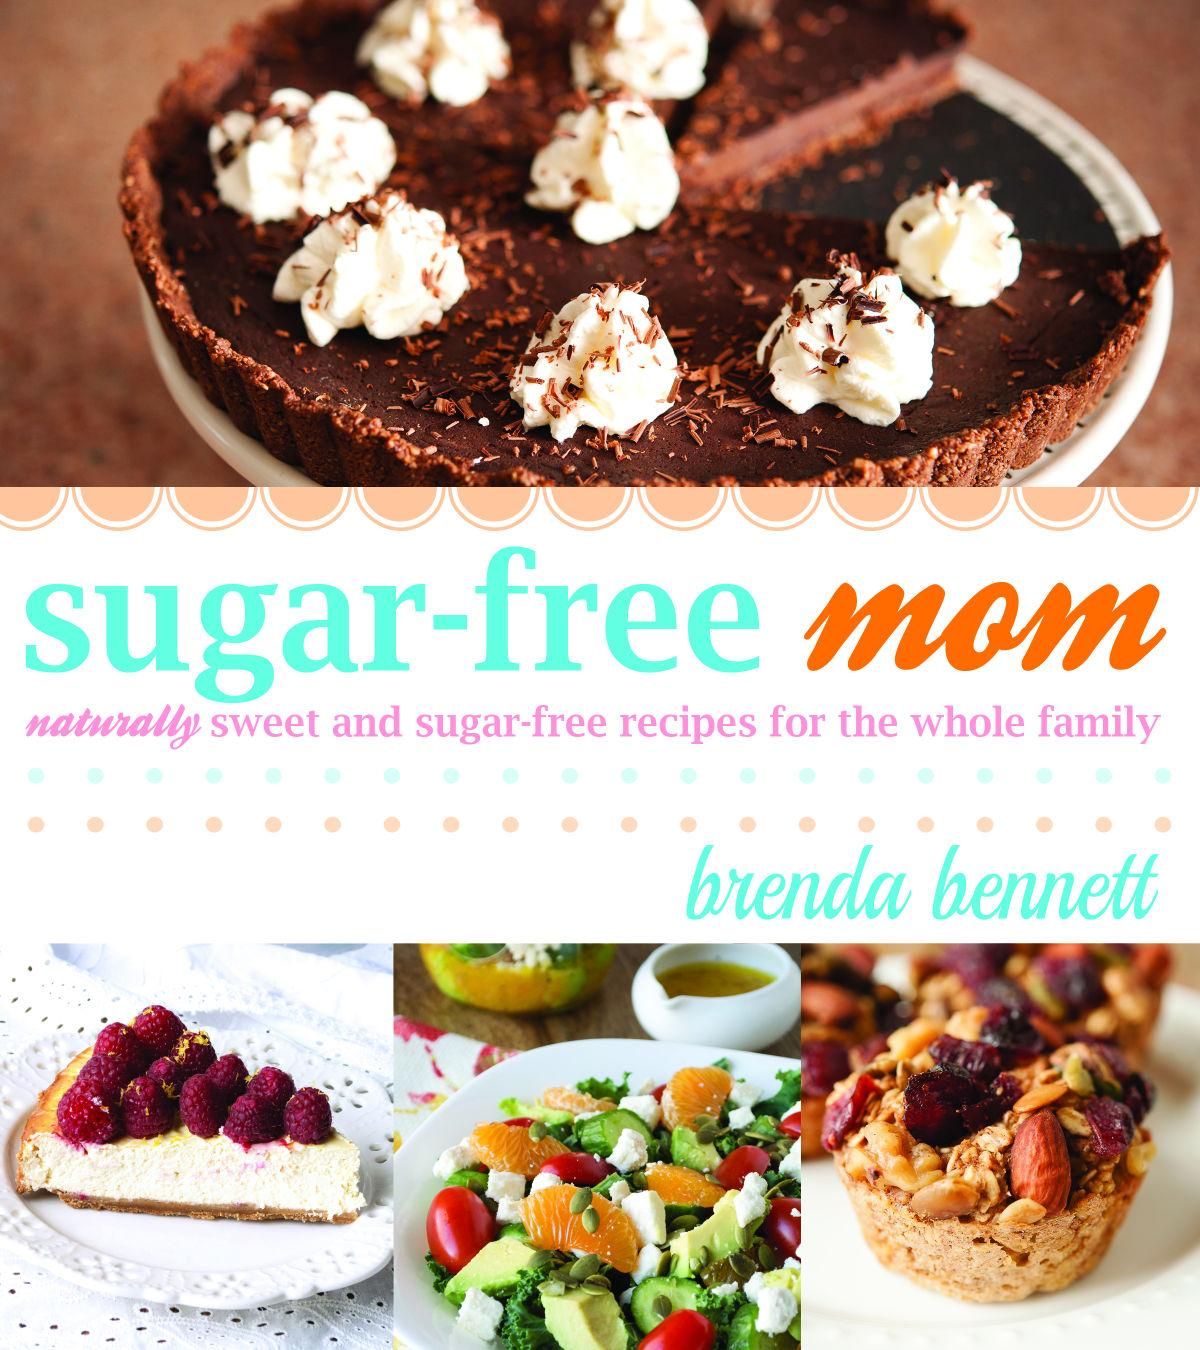 Cookbook review: 'Sugar-Free Mom' is an excellent resource for healthful recipes